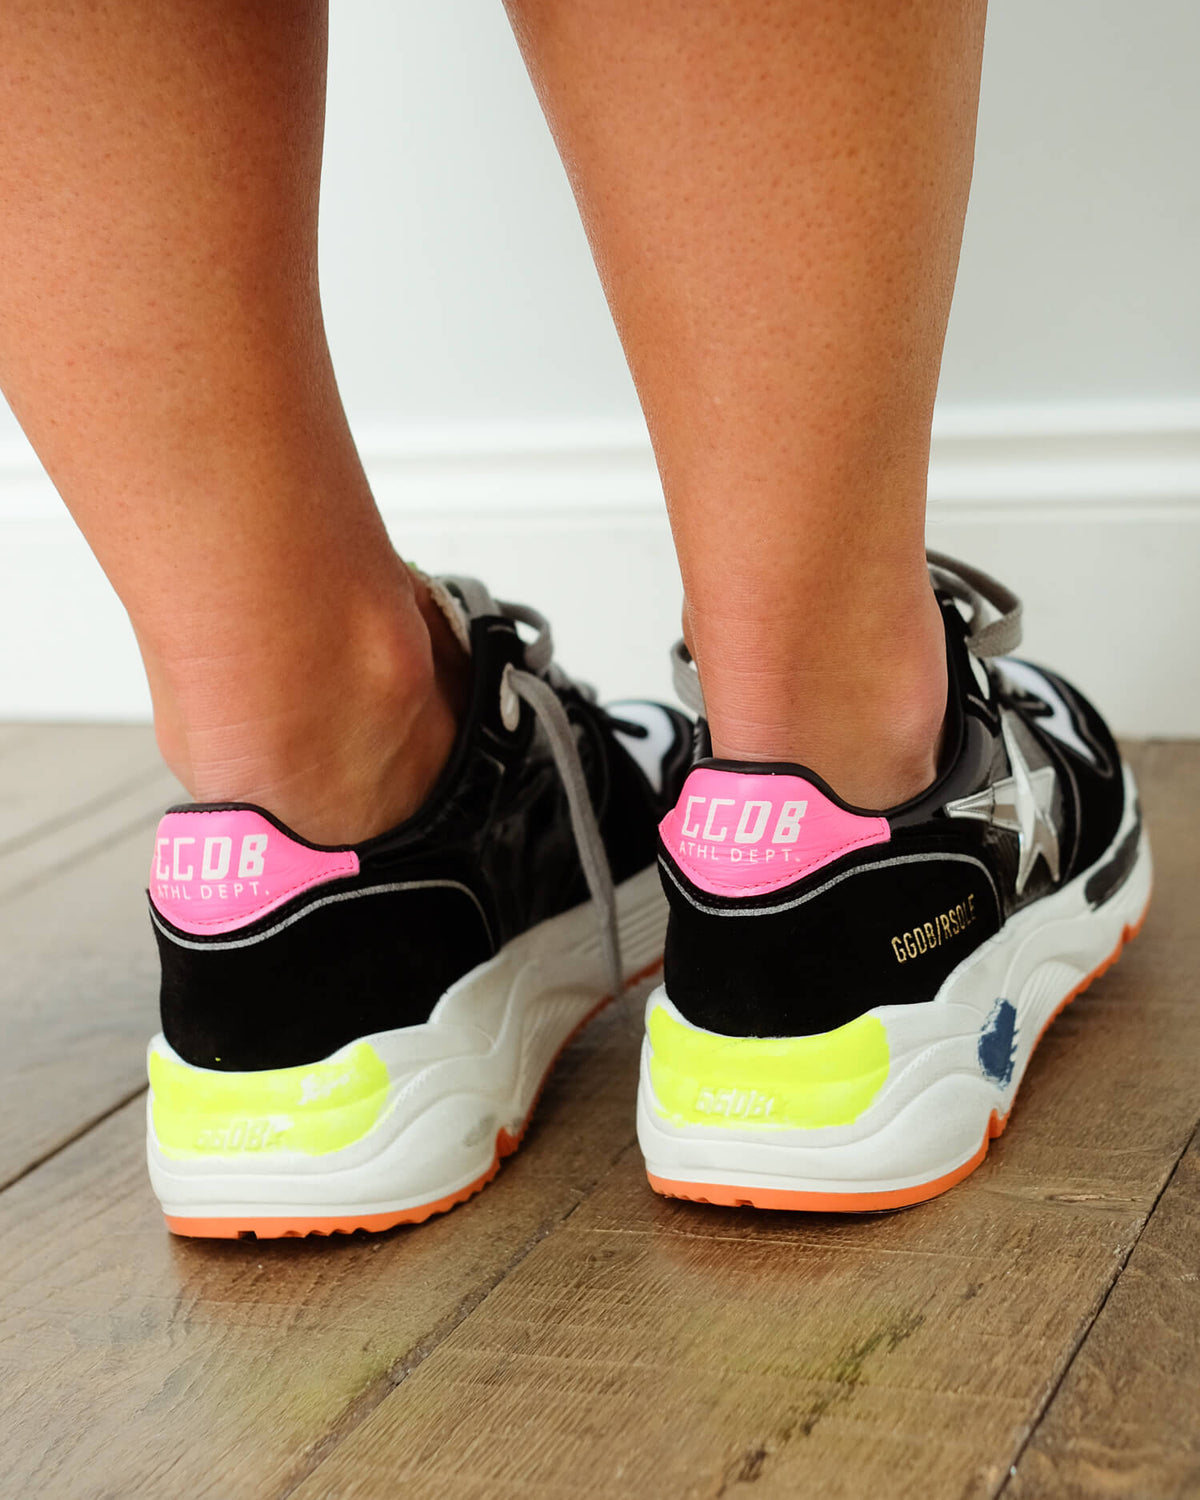 GG Running sole 280 in black, pink and silver star